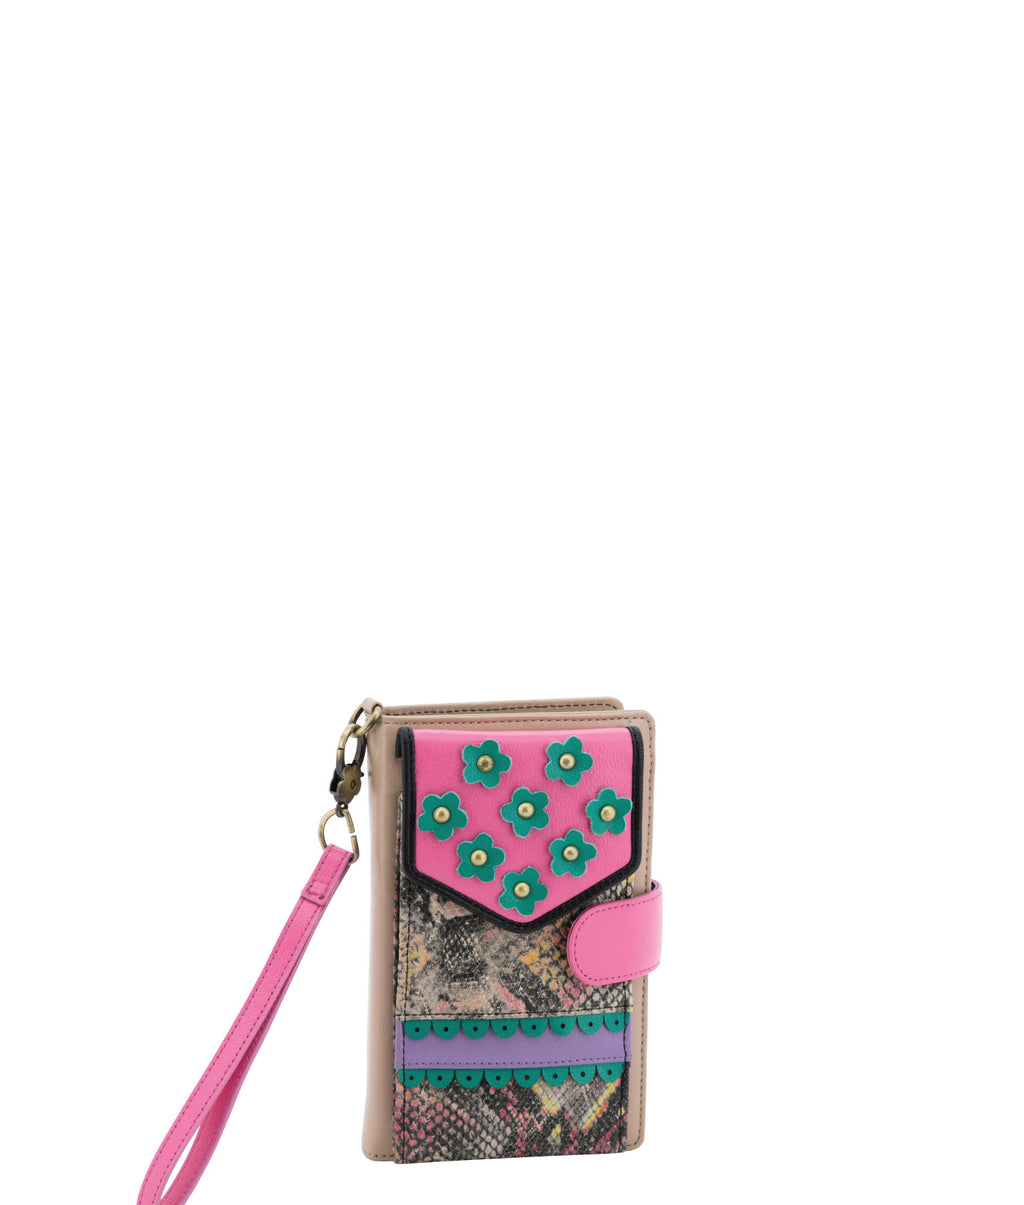 TRIXEY Wallet - Pink Champagne